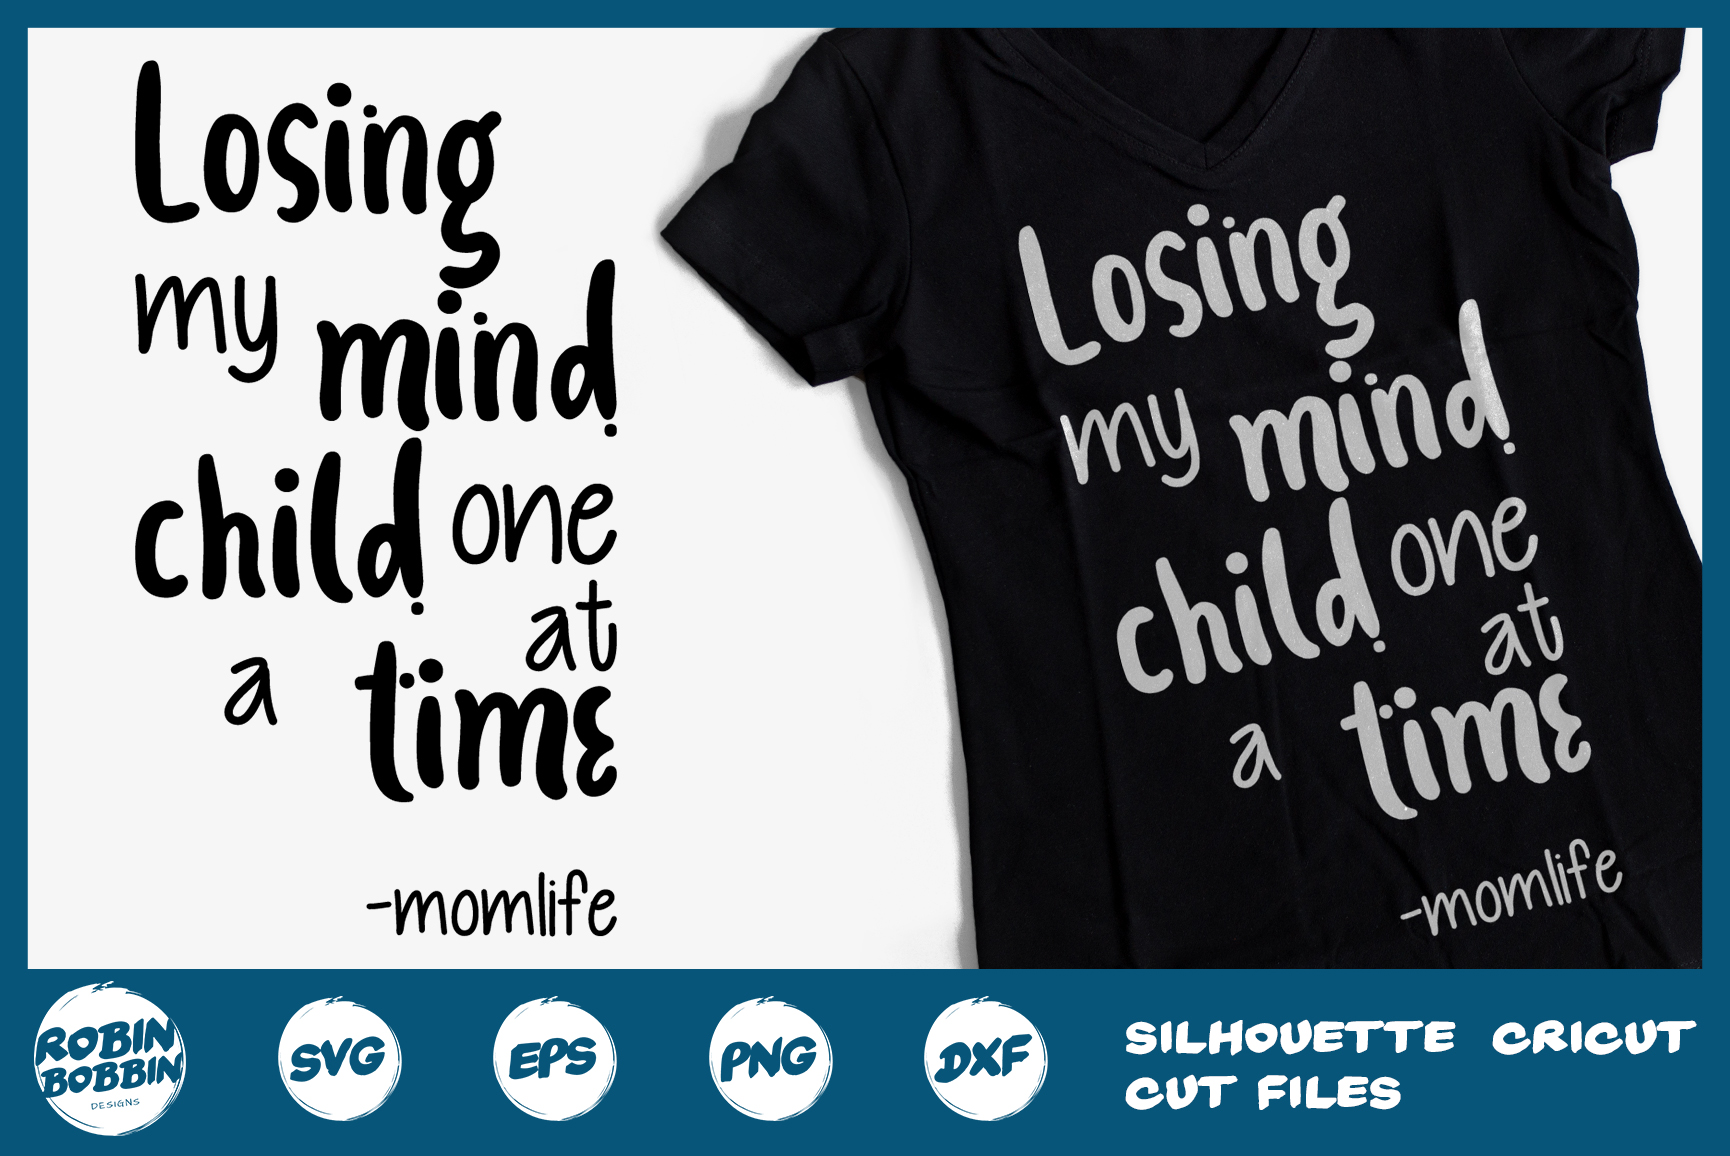 Loosing My Mind Child One At Time Momlife svg- Mother SVG example image 1